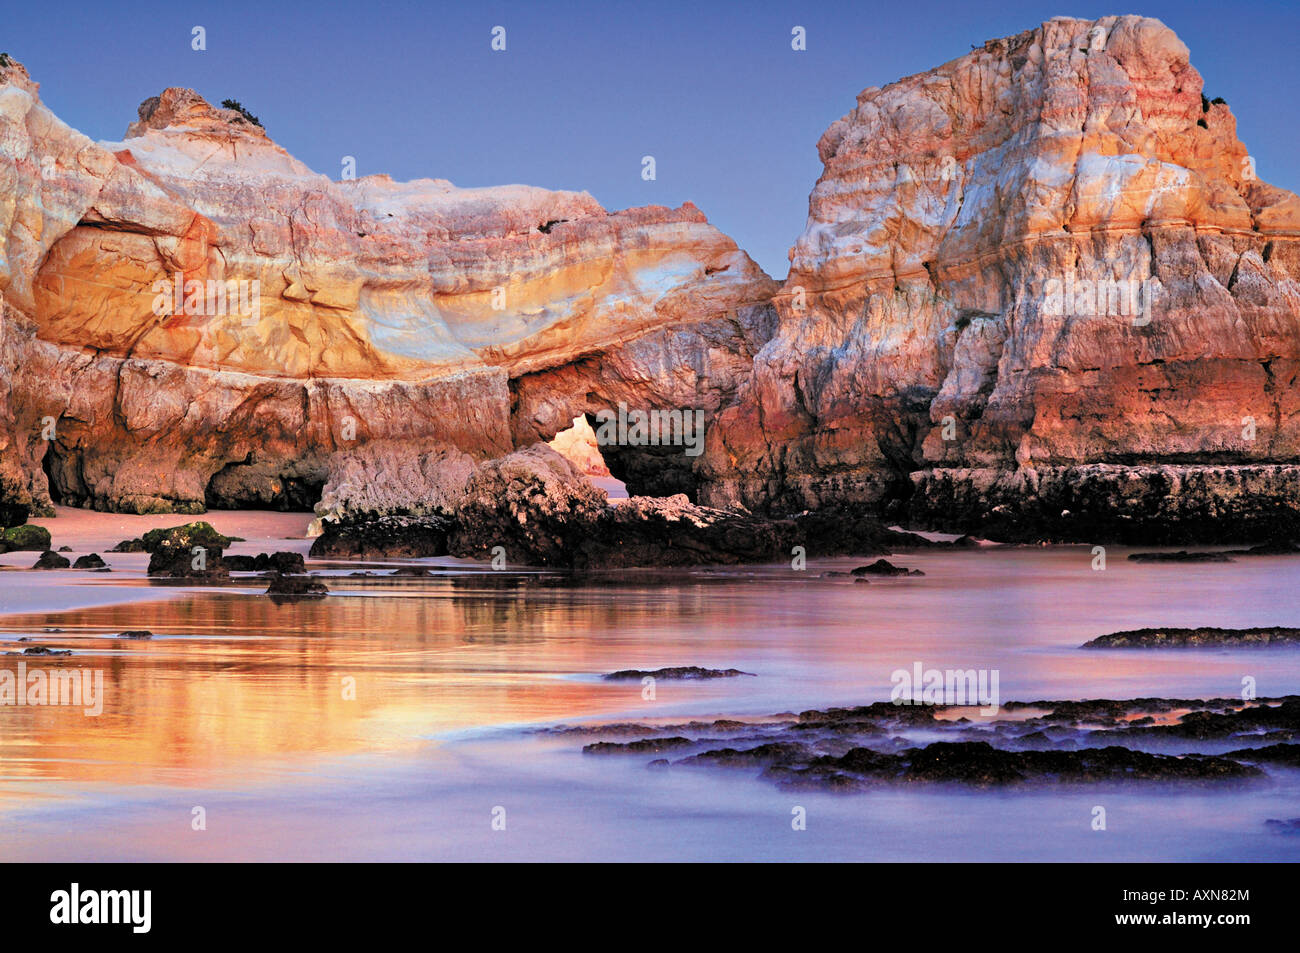 Rock formations at the beach Praia do Vau, Portimao, Algarve, Portugal - Stock Image